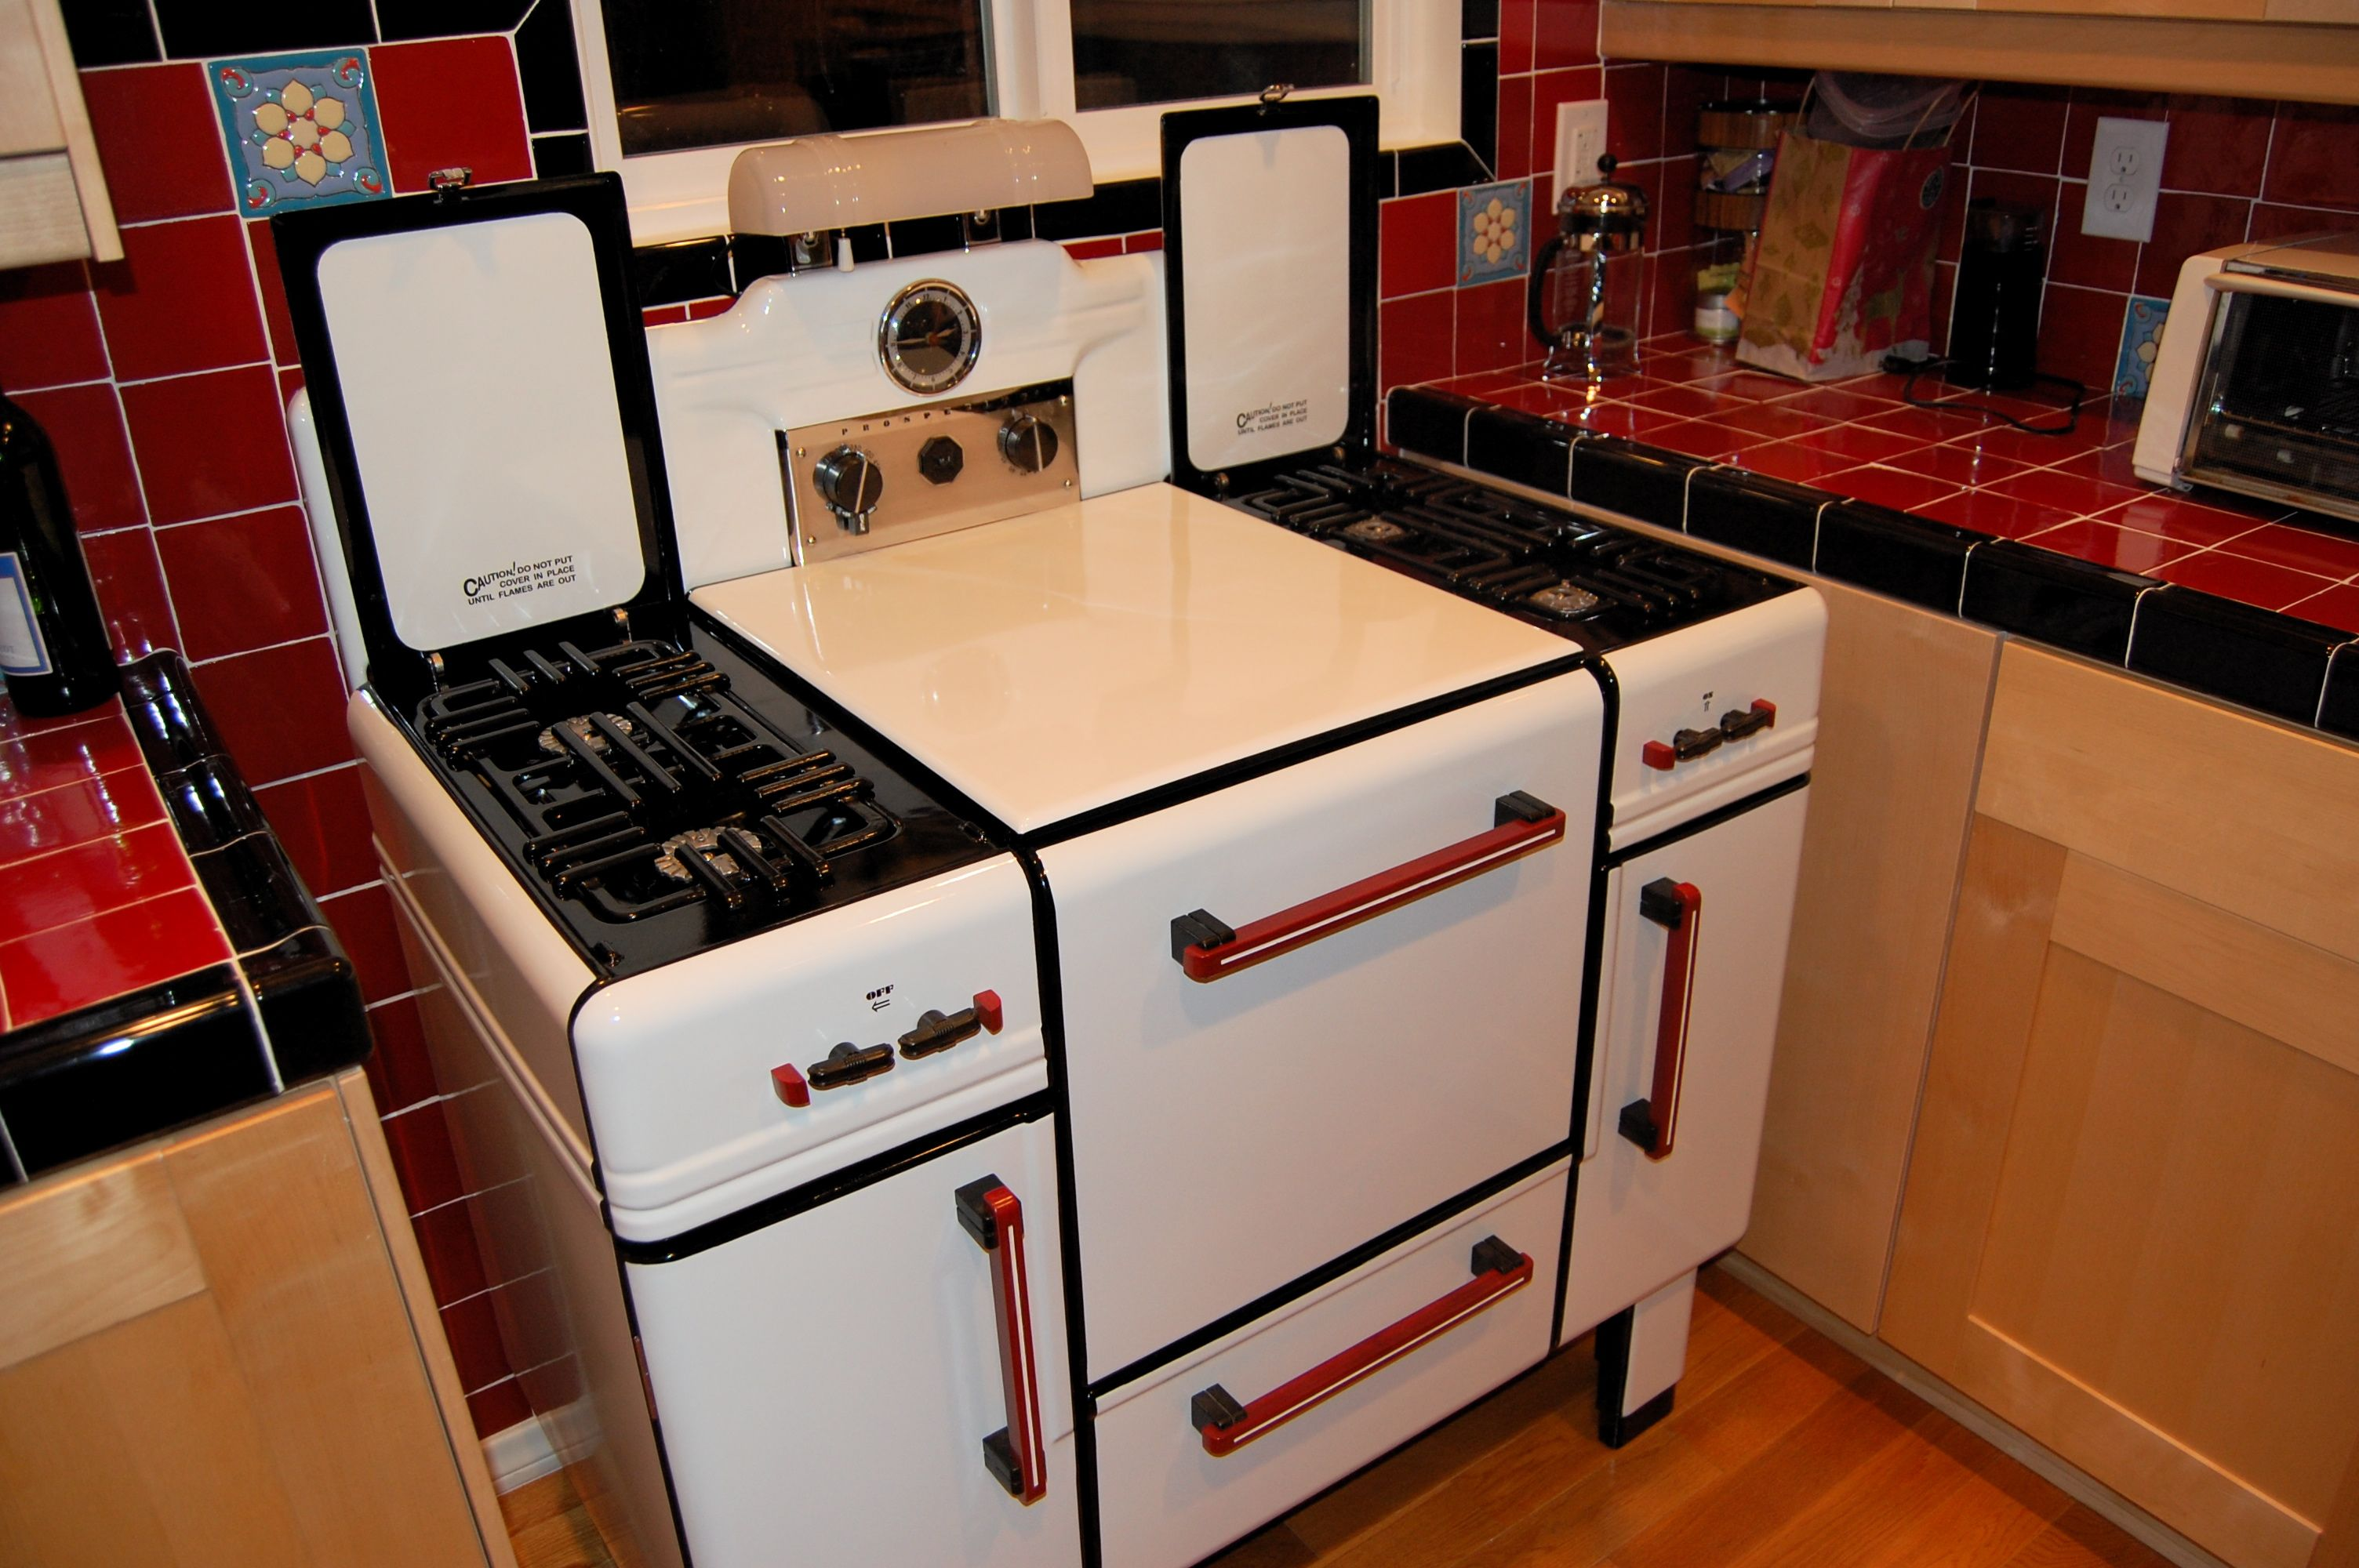 1930s Sears Prosperity Deco Industrial Design Vintage Stoves Double Wall Oven Kitchen Appliances